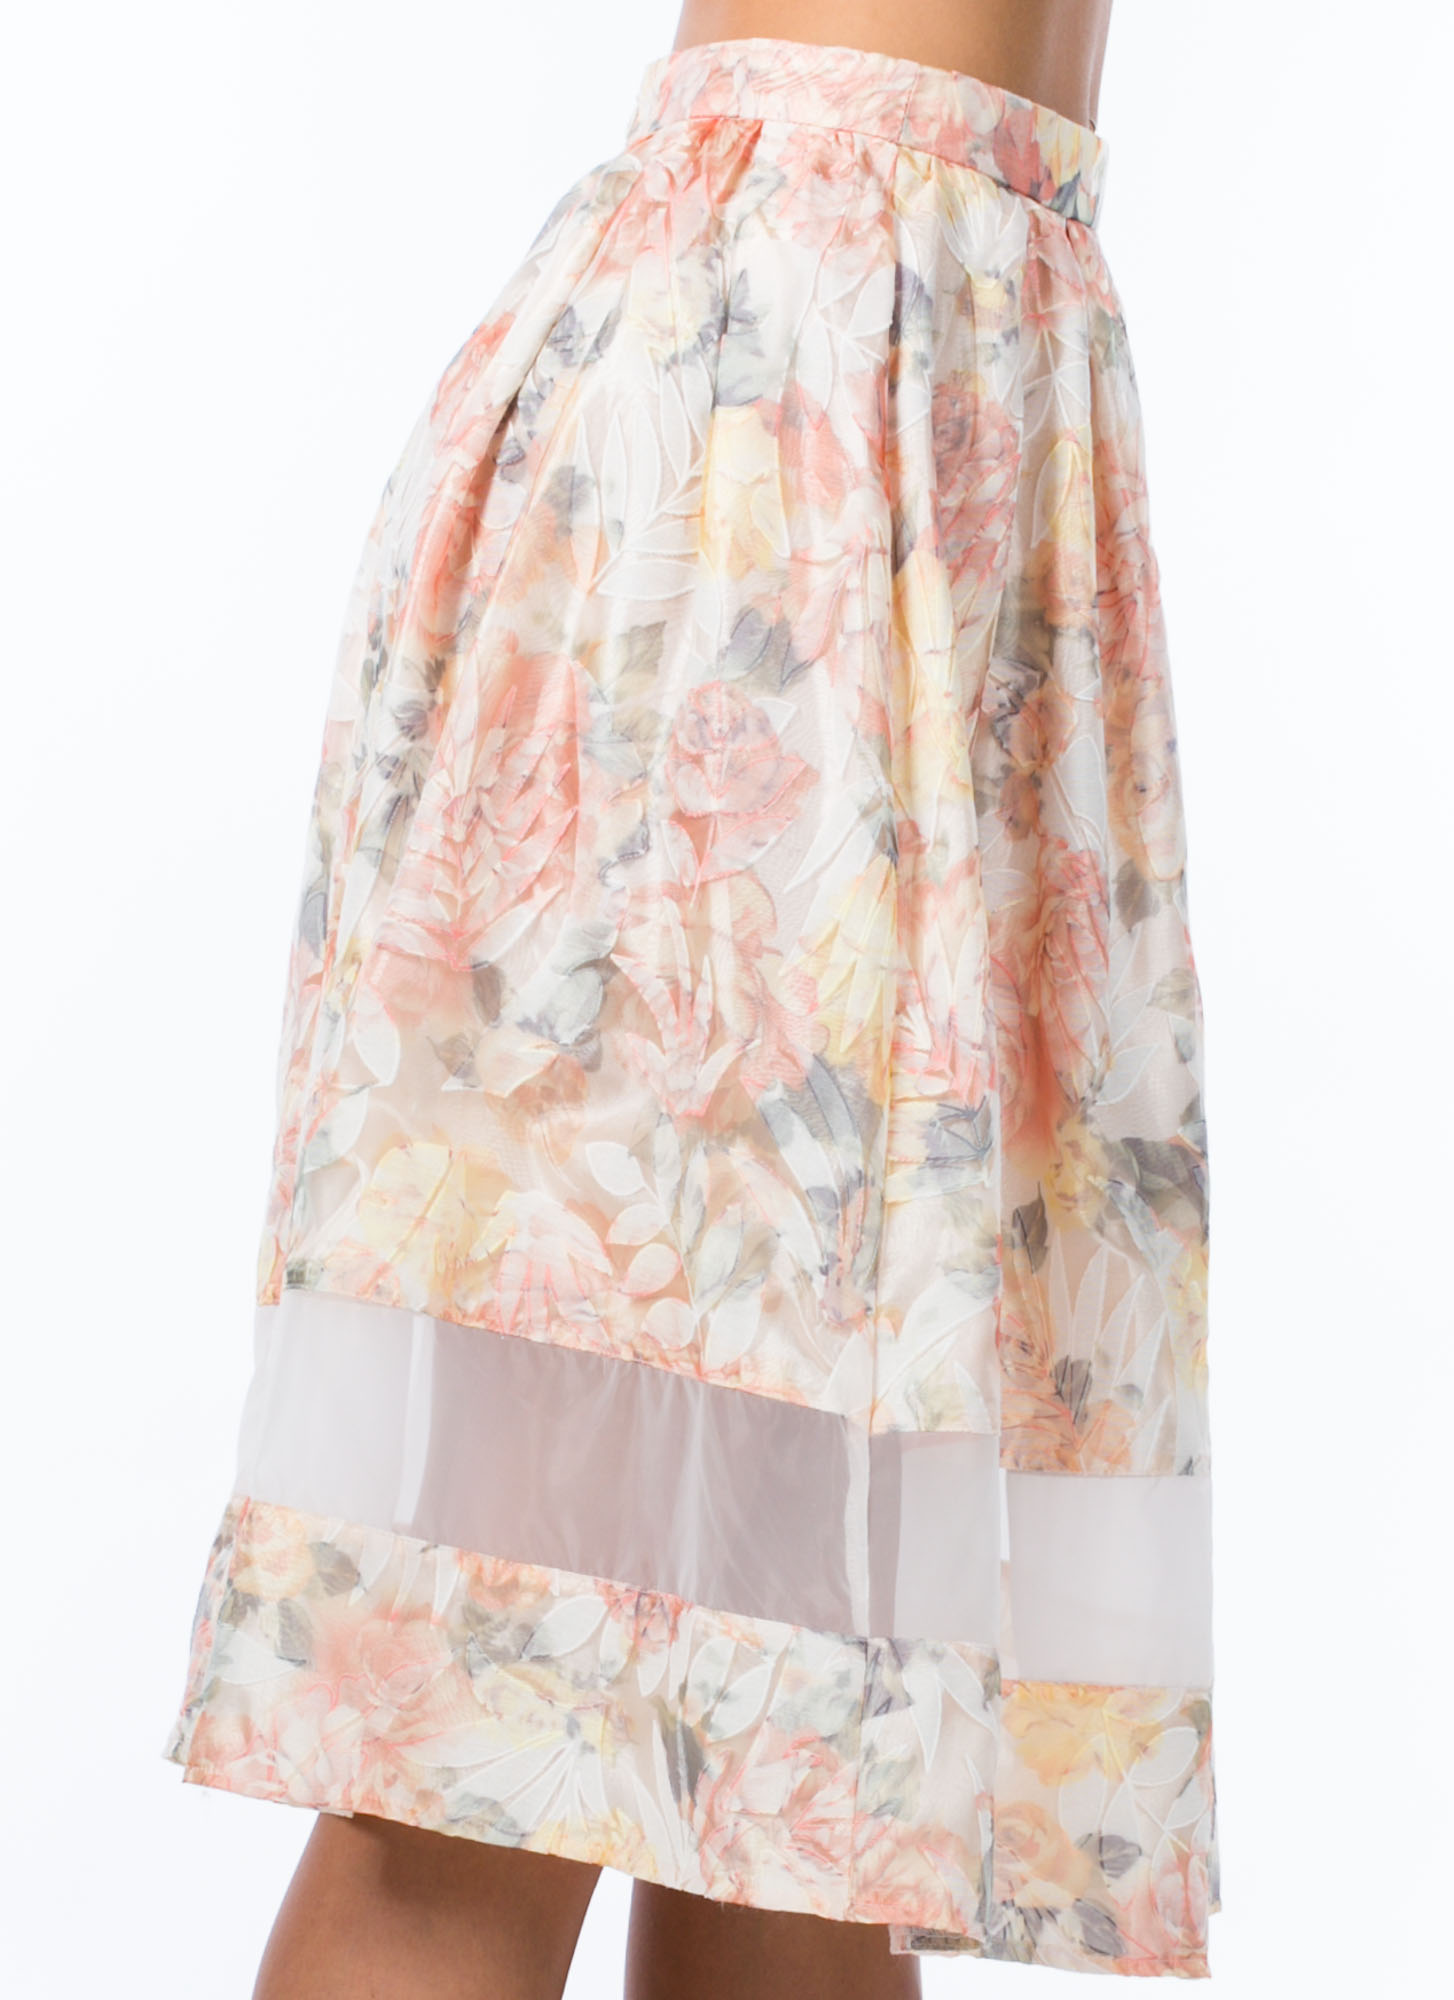 Sheer Pressure Organza Skirt PEACH